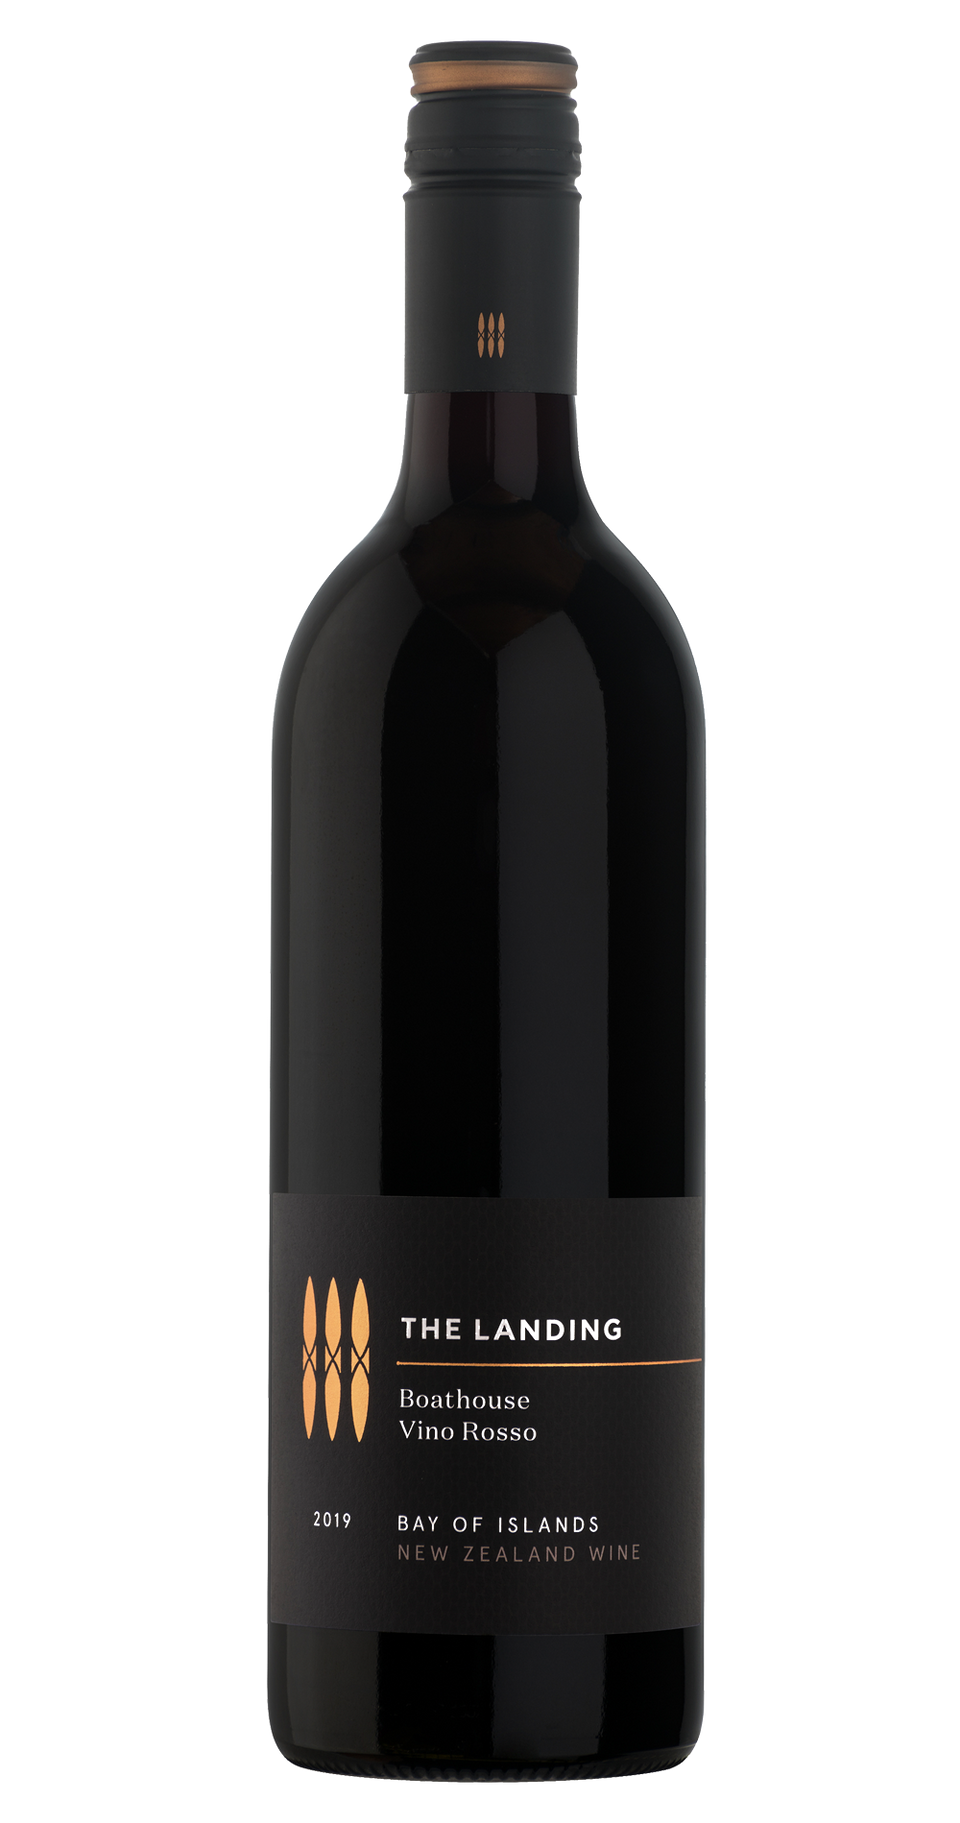 2019 The Landing 'Boathouse' Vino Rosso, Bay of Islands